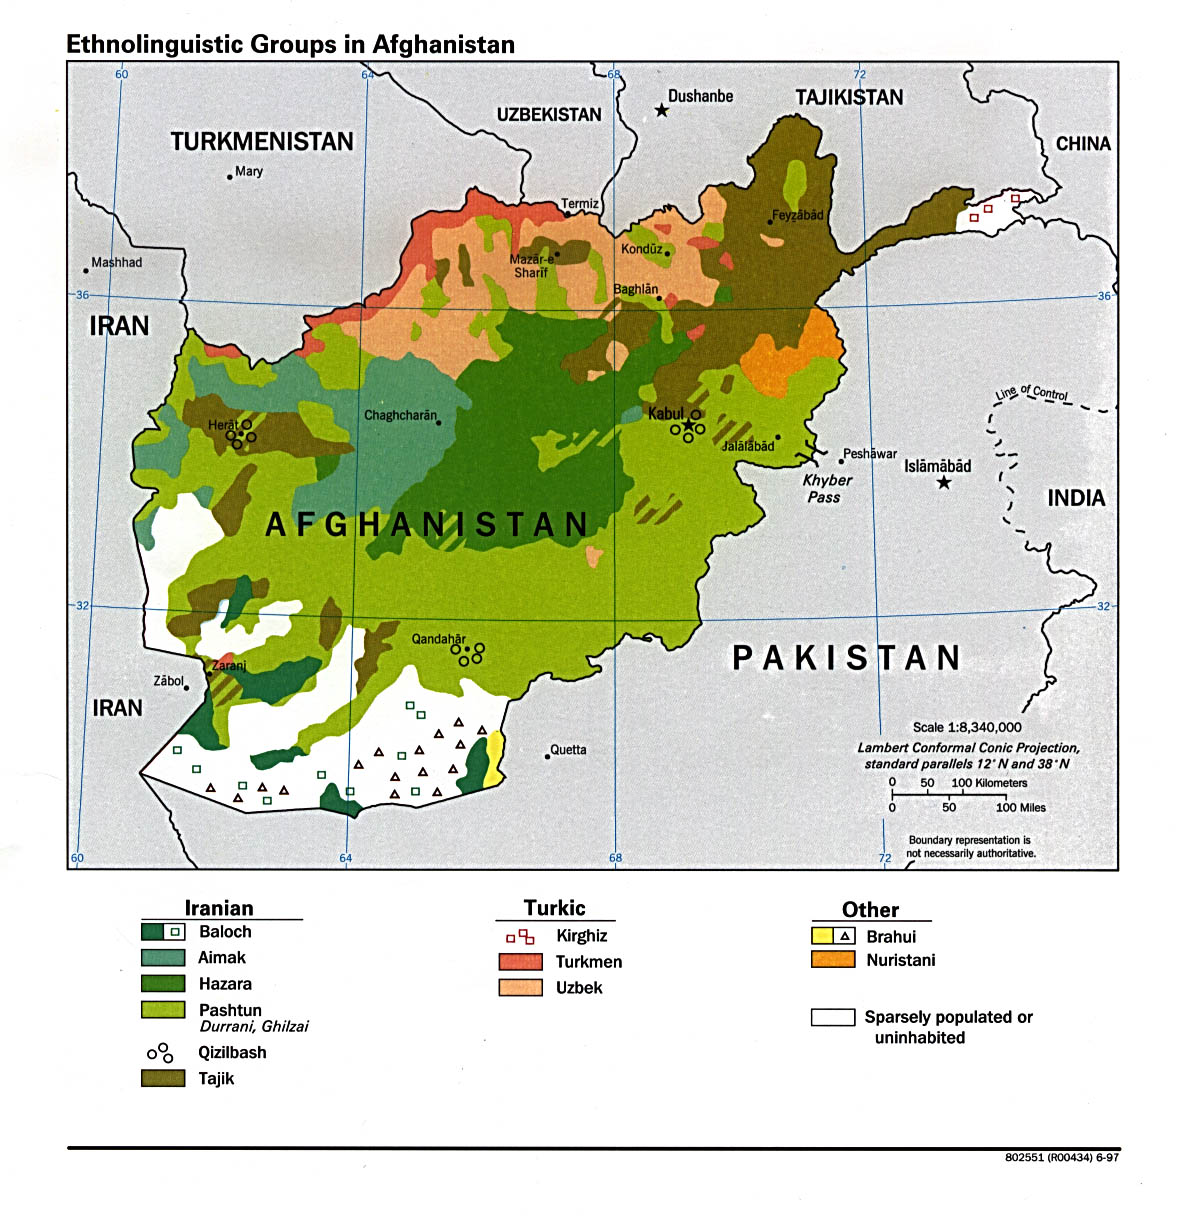 CIA Map of Afghanistan Ethnic Groups, 1997